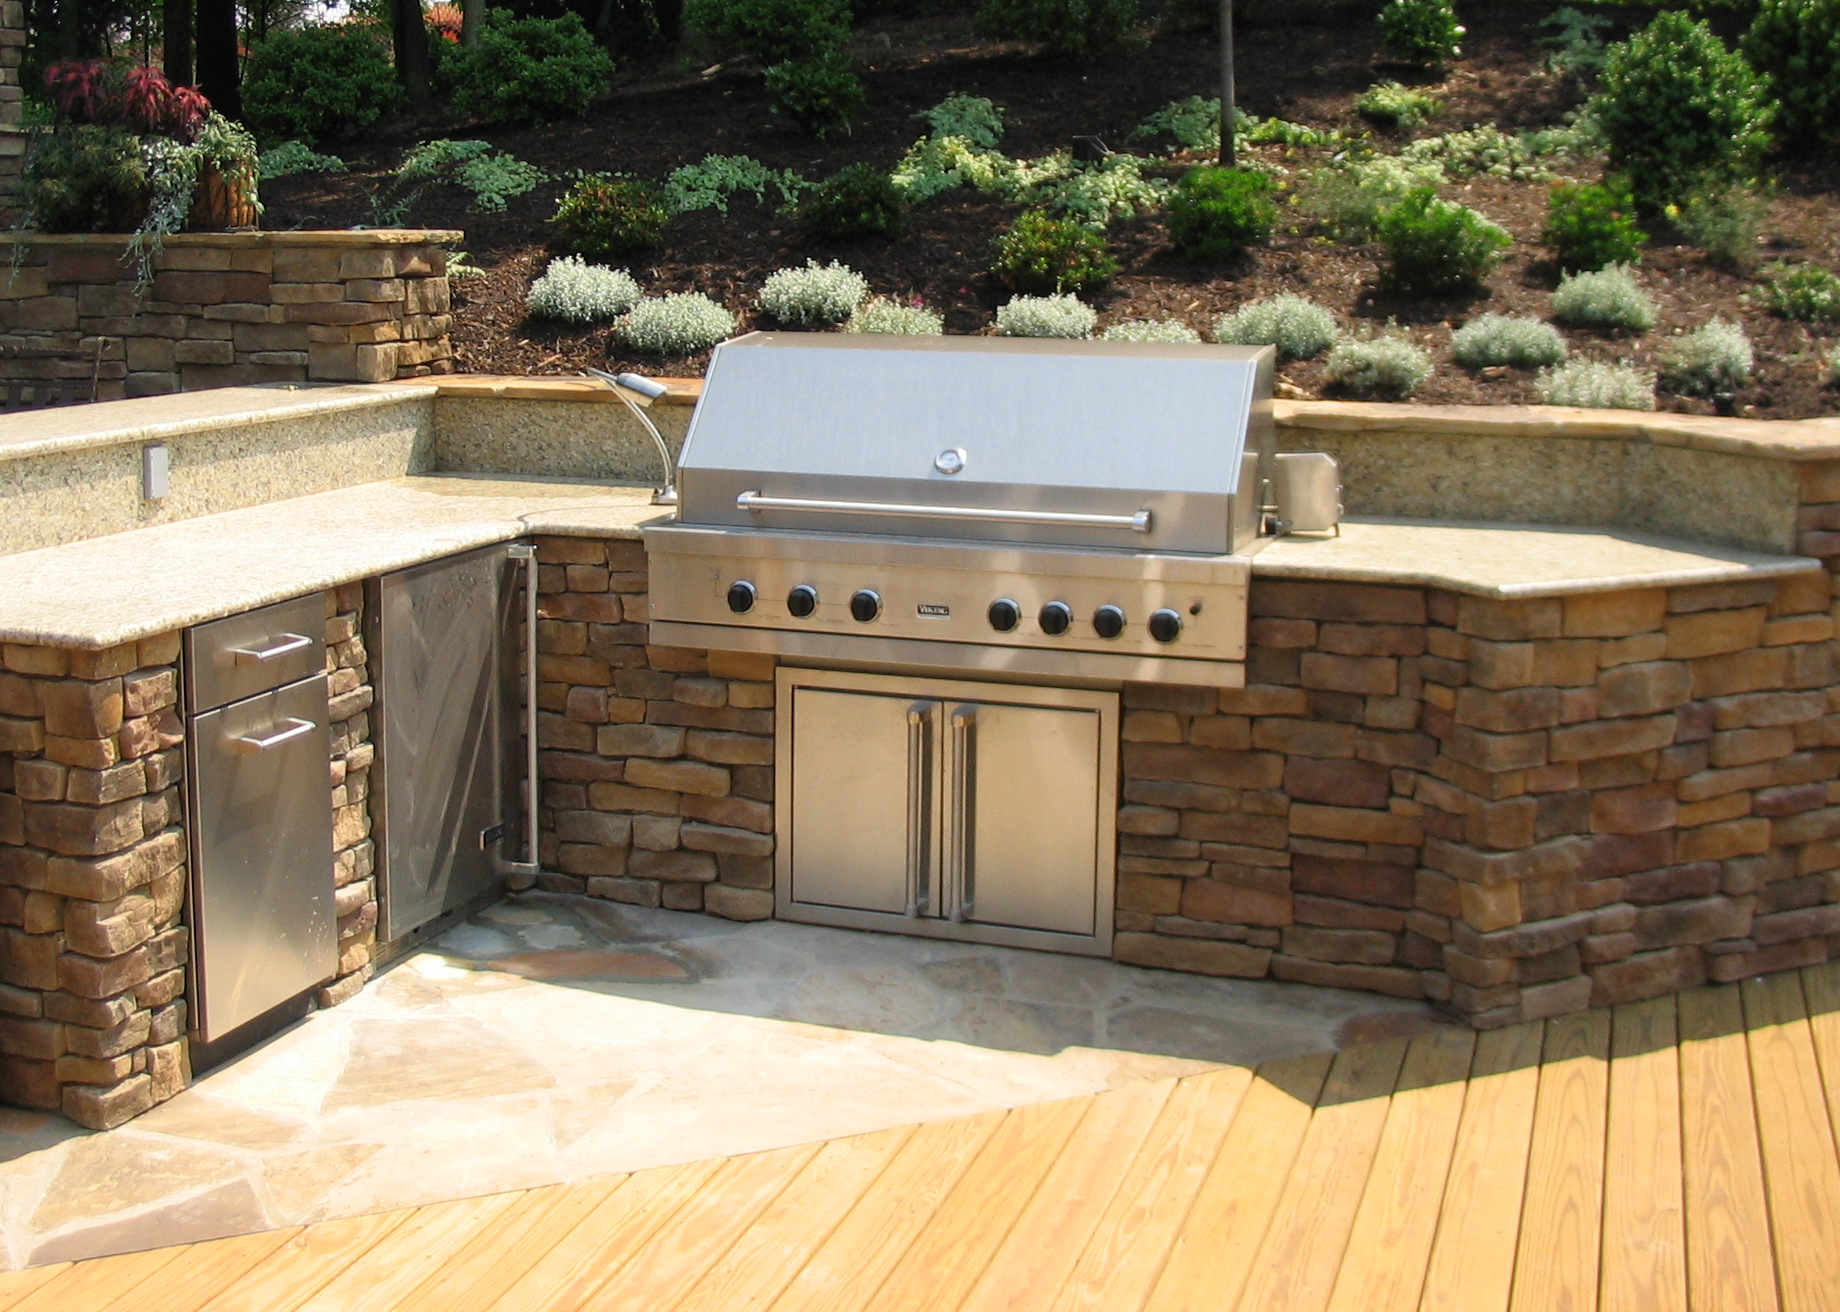 grills for outdoor kitchens pics of kitchen islands this look the bbq area